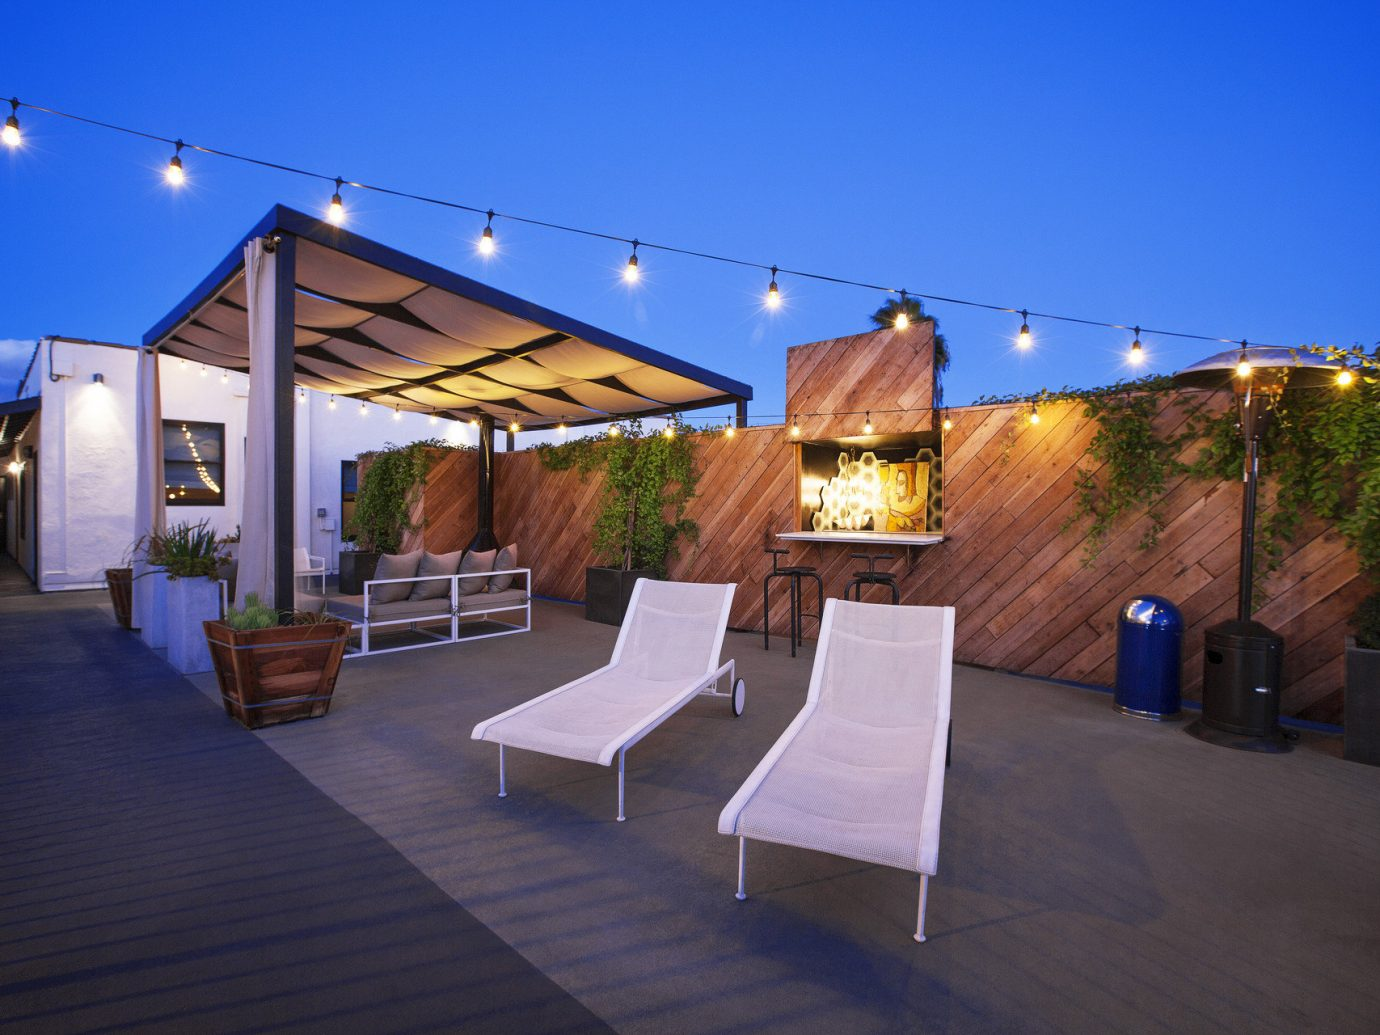 Boutique cozy Greenery Hip Hotels Lounge lounge chairs outdoor lounge Outdoors Patio private quaint string lights Terrace trendy sky indoor house Architecture estate lighting restaurant home Resort outdoor structure Villa several